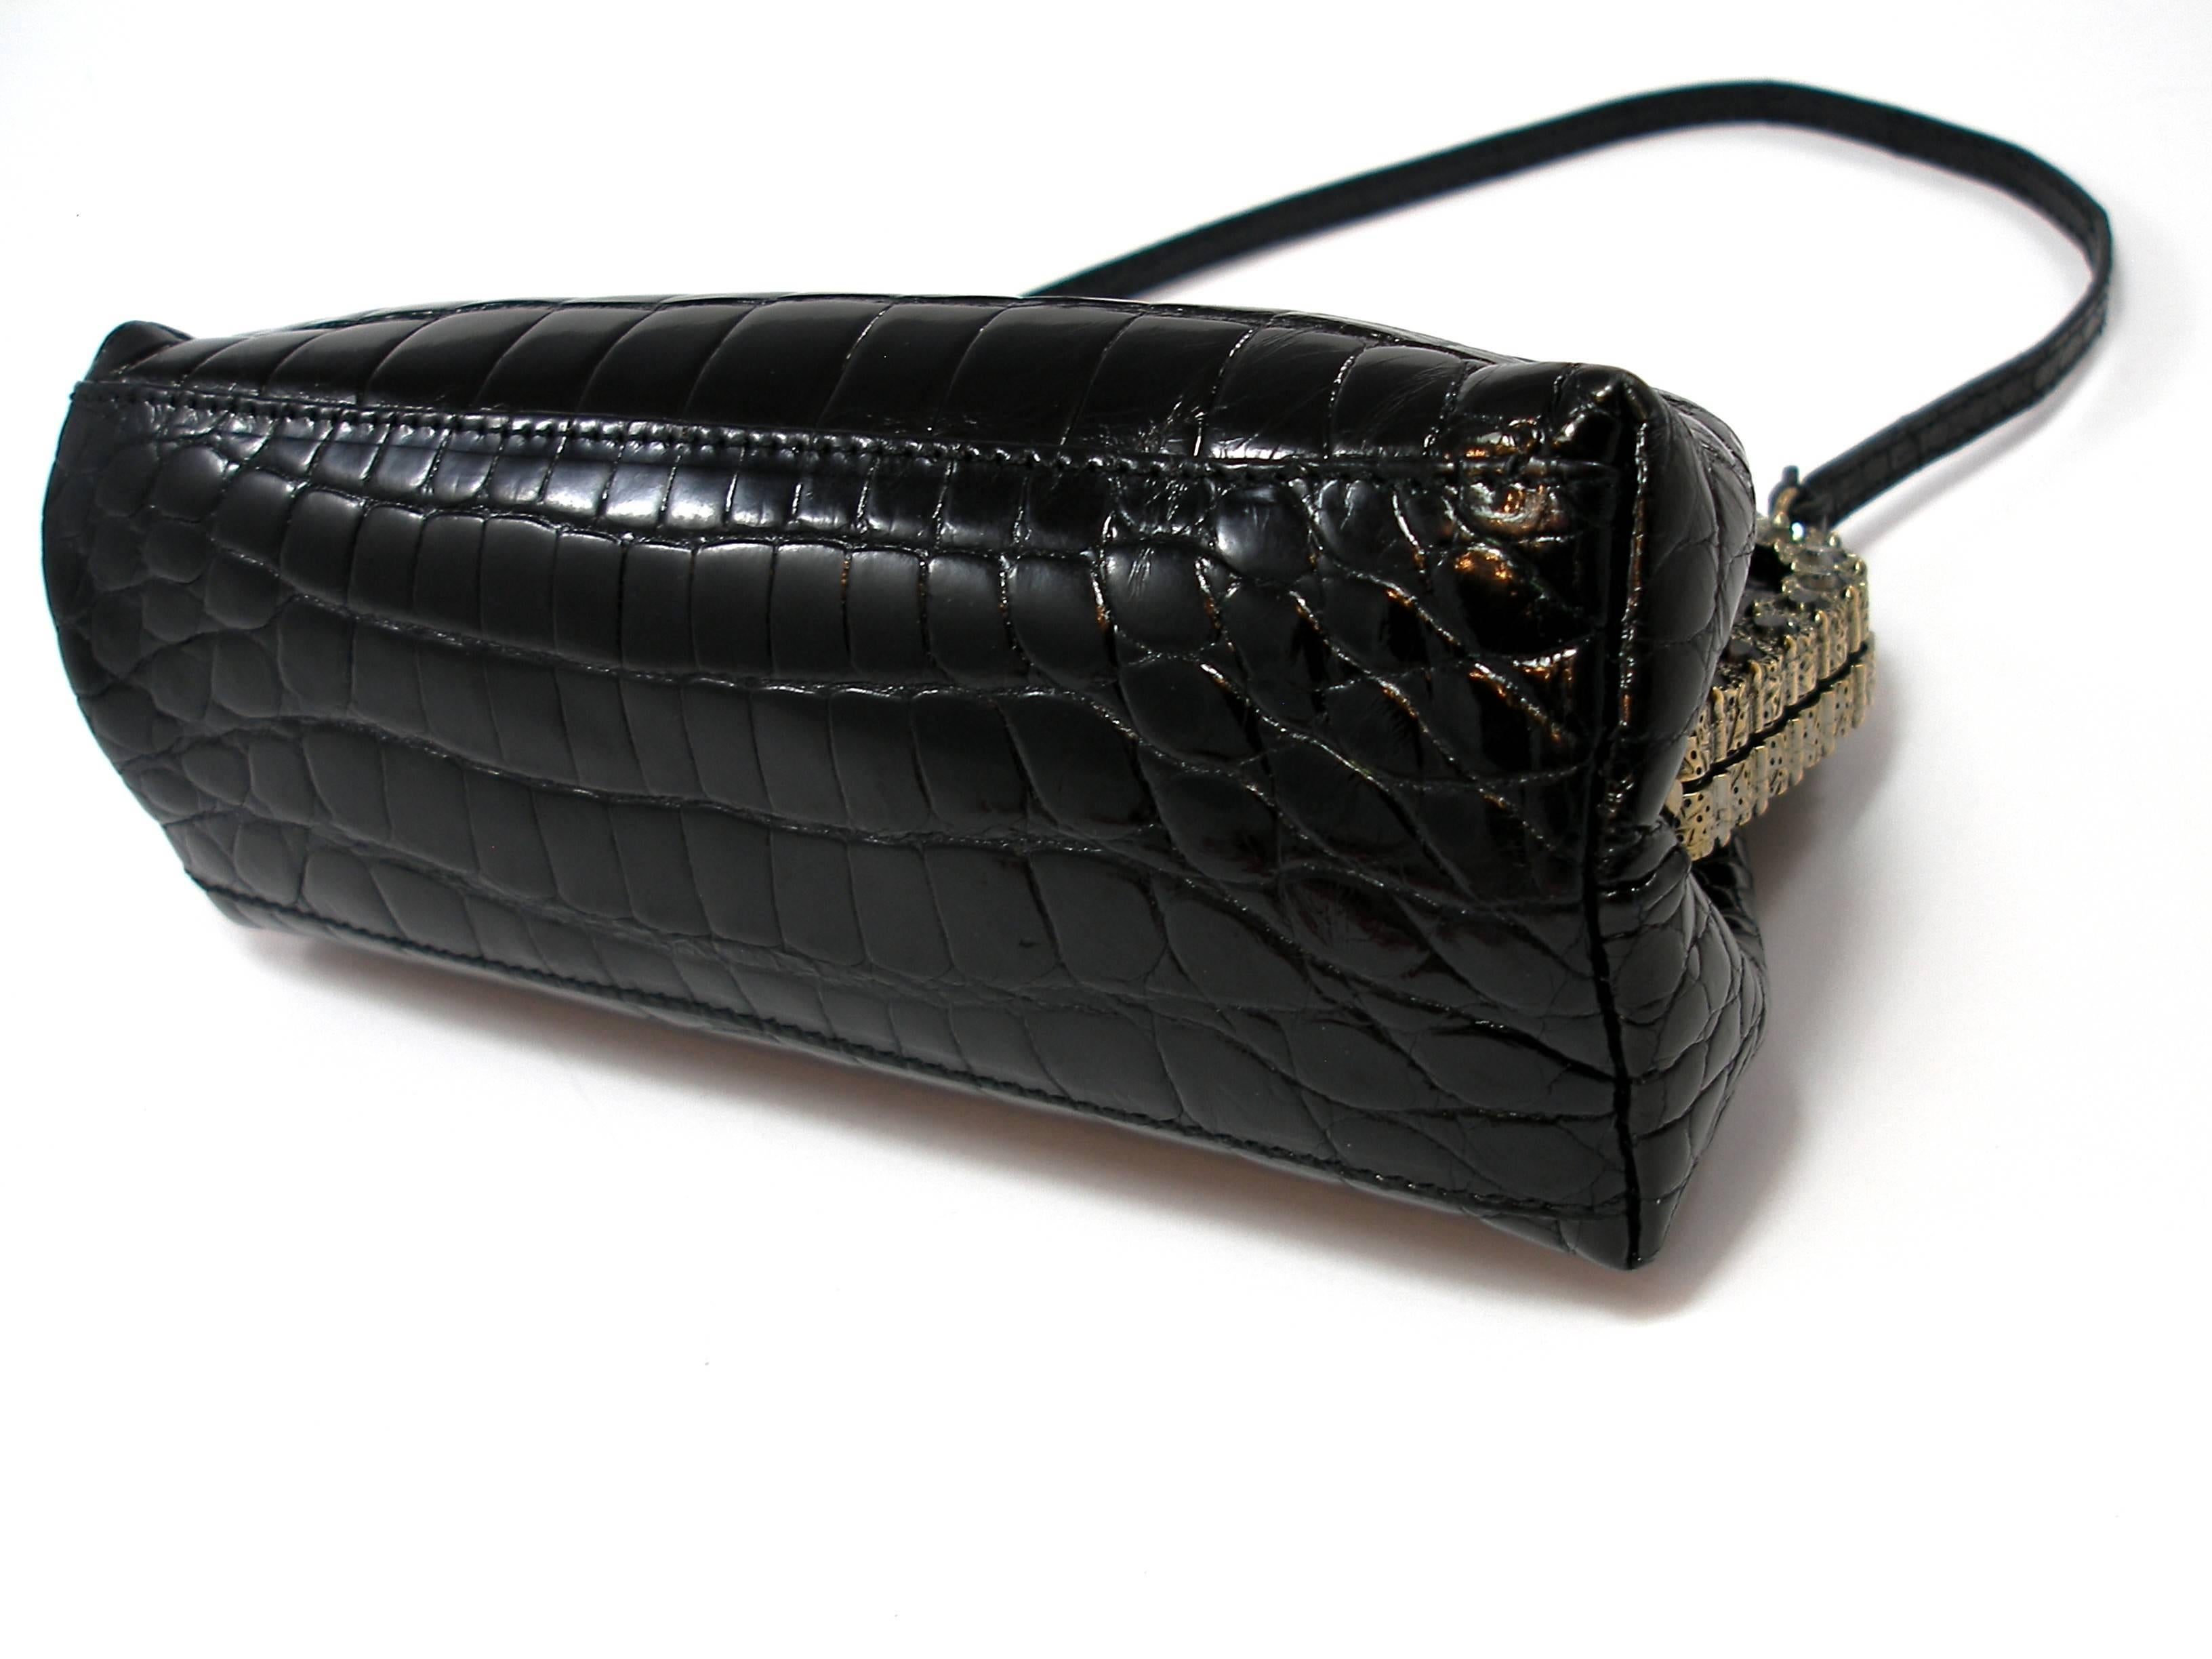 fd42b772ff Valentino Evening bag in Alligator and crystal / Edition Limited very rare